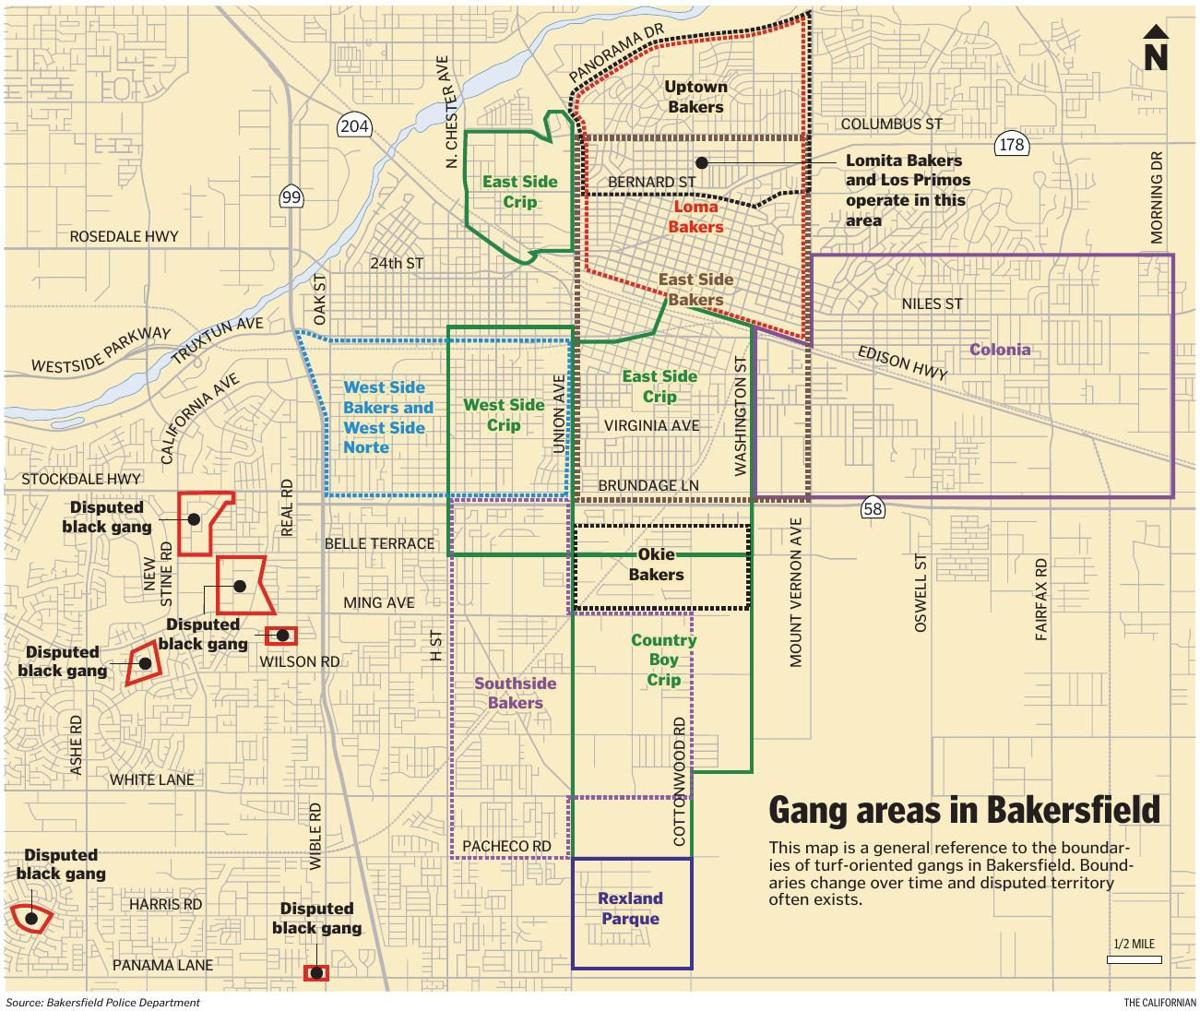 MAP: Gang areas in Bakersfield | | bakersfield.com Santa Ana Street Gangs Maps on baldwin village los angeles map, city of santa ana map, lapd gang injunction map, santa ana el salvador map, oakland crime map, monterey park ca map, city of houston ward map, east la gang territory map, highland park ca map, orange county zip code map, ca santa ana ward map, san antonio crime map, pomona california map, chicago gang turf map, oakland gangs territory map, main place mall aerial map, gangs in california map,